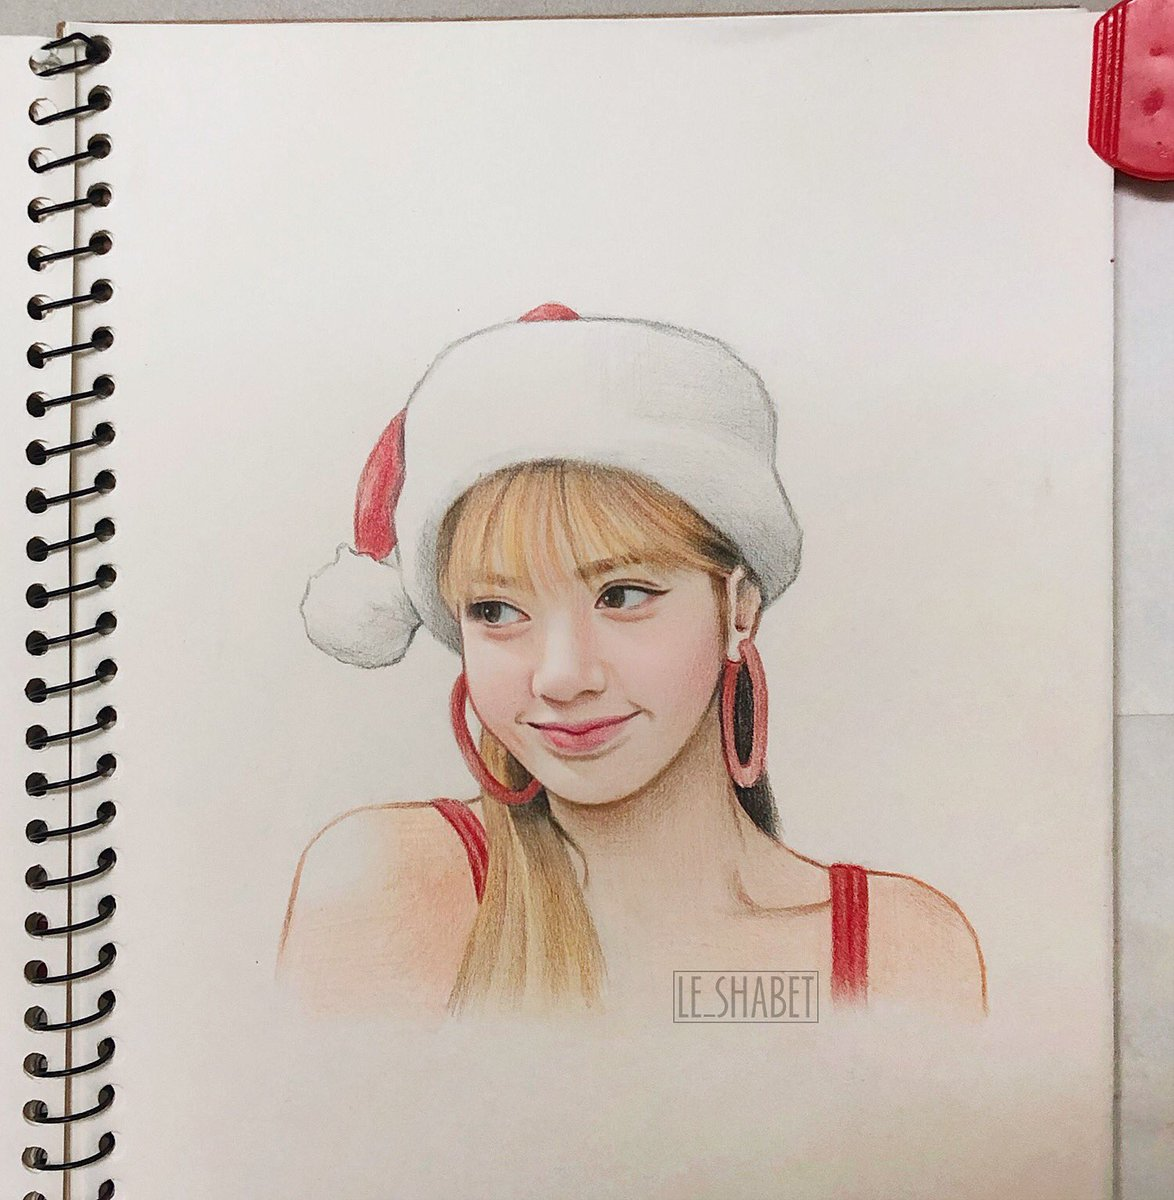 Blackpink Lisa christmas Fanart 💖 Merry Christmas everyone!!! #lisa #blackpink #lisafanart #blackpink #리사